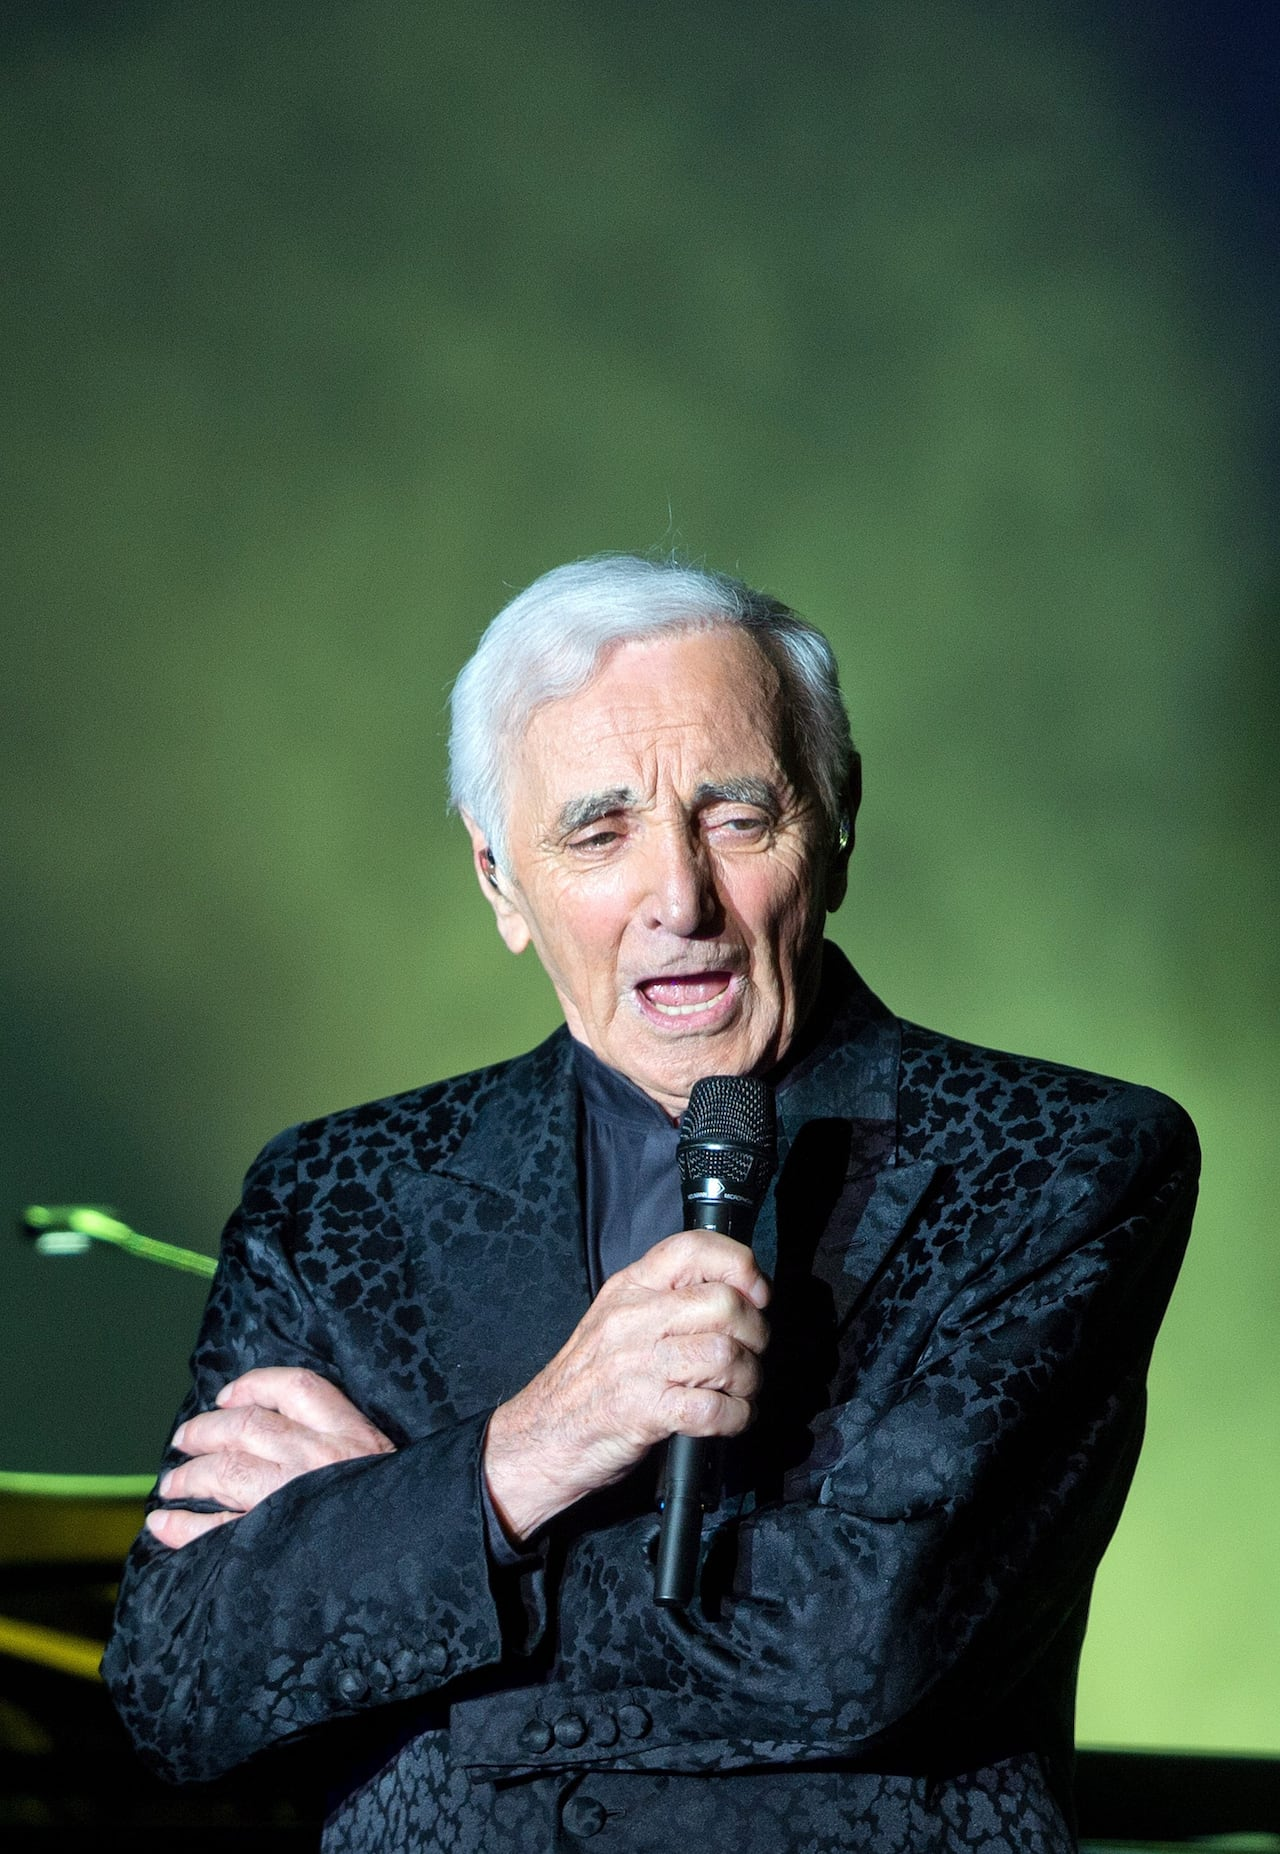 French singing legend Charles Aznavour dead at 94